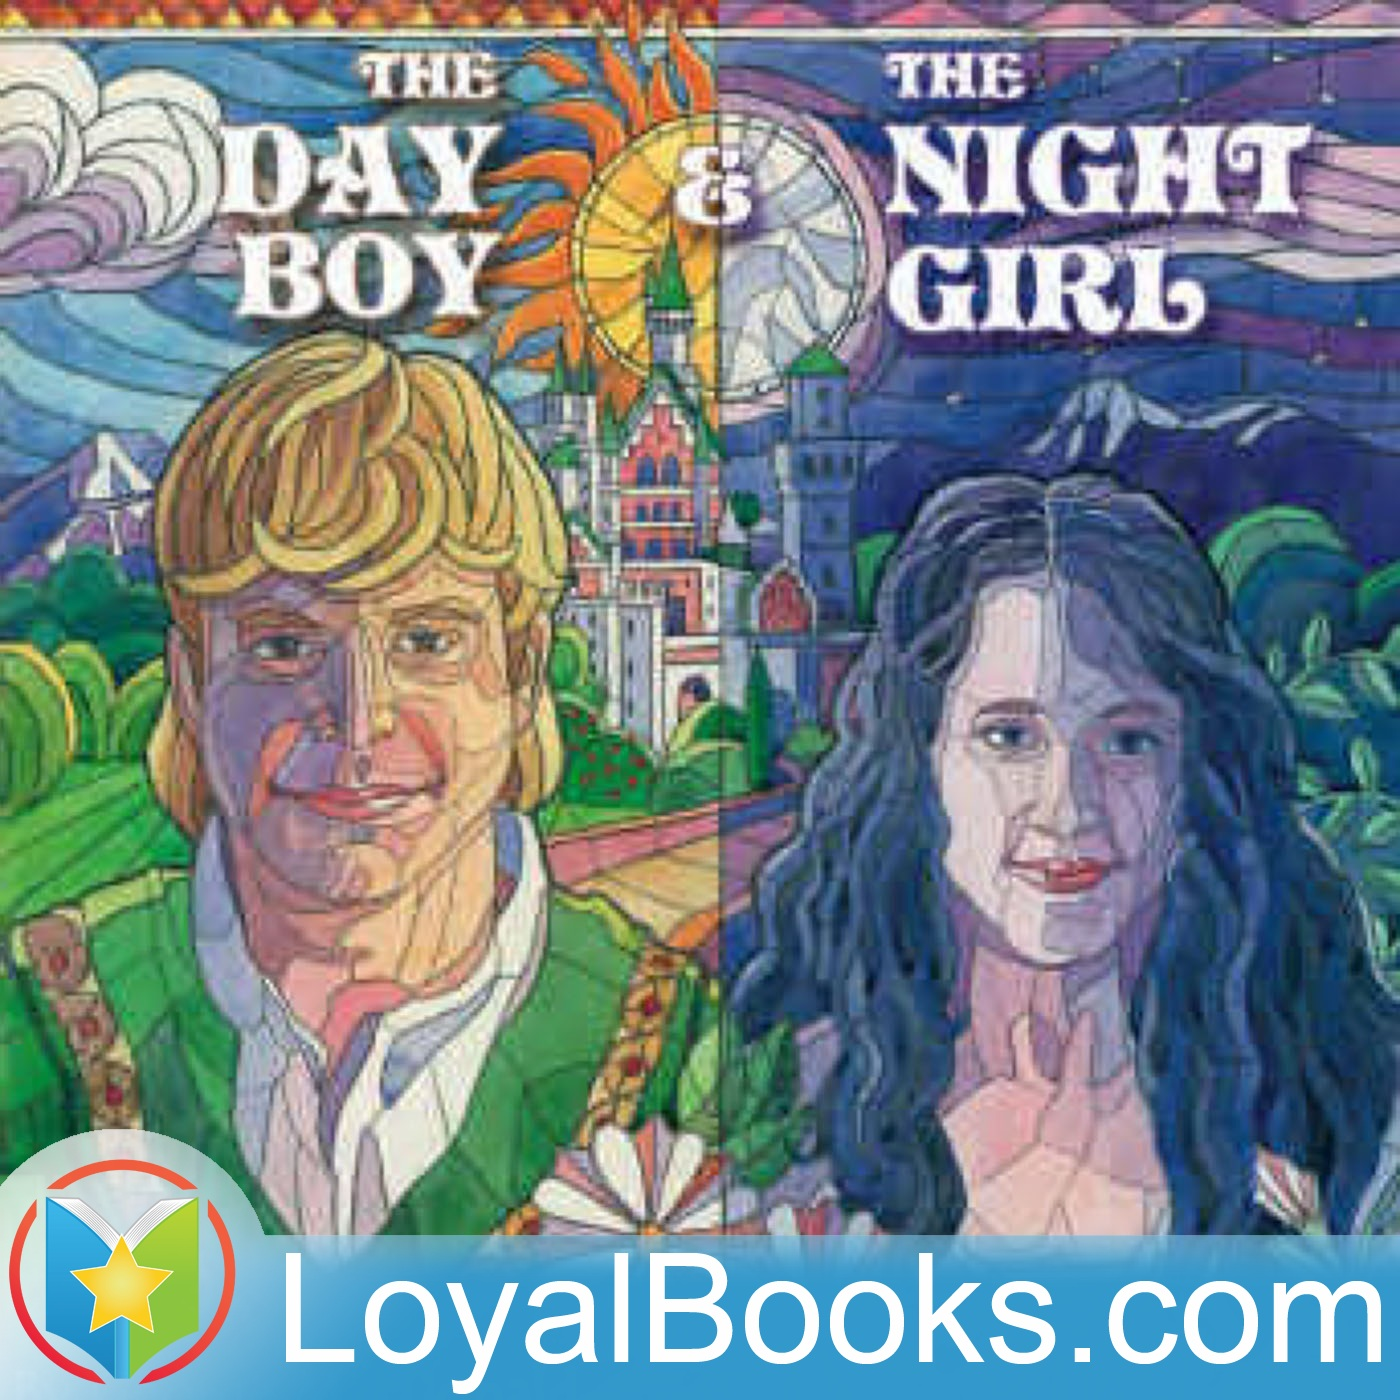 <![CDATA[The Day Boy and the Night Girl by George MacDonald]]>